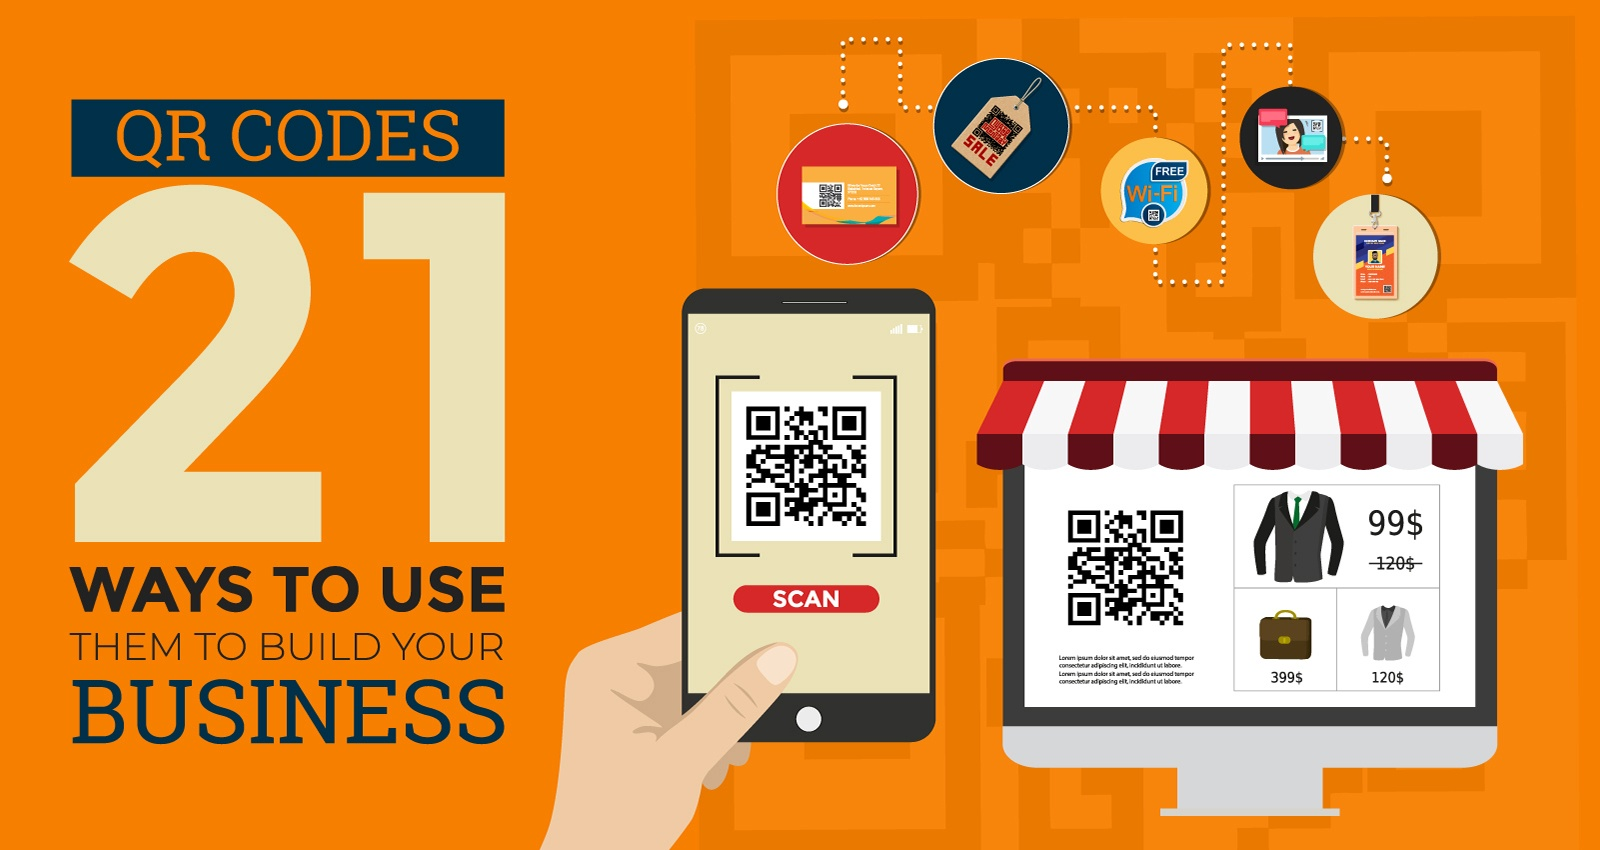 280218 QR CODES – 21 WAYS TO USE THEM TO BUILD YOUR BUSINESS Opt2 090418